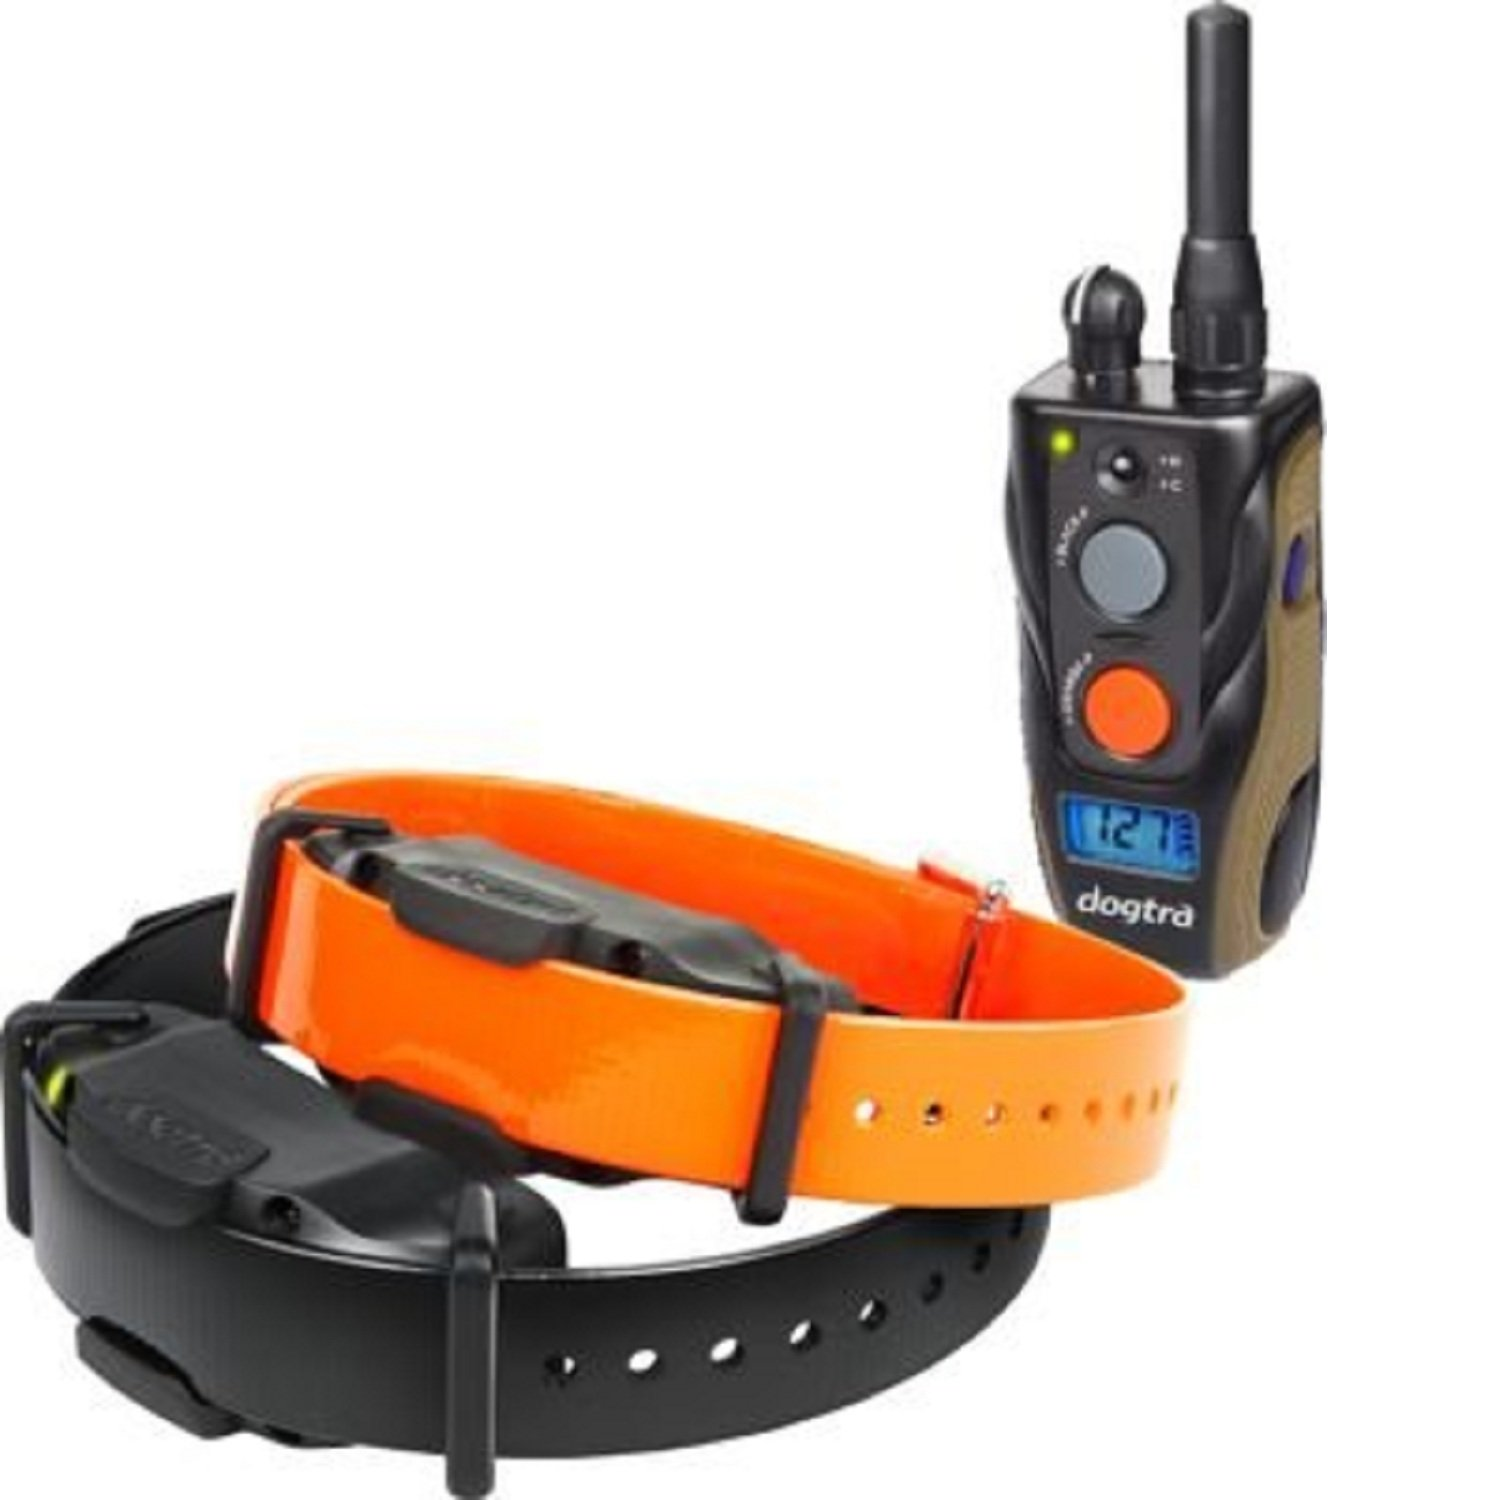 Dogtra 1902S 3/4 Mile Range 2 Dog Training Collar System by Dogtra